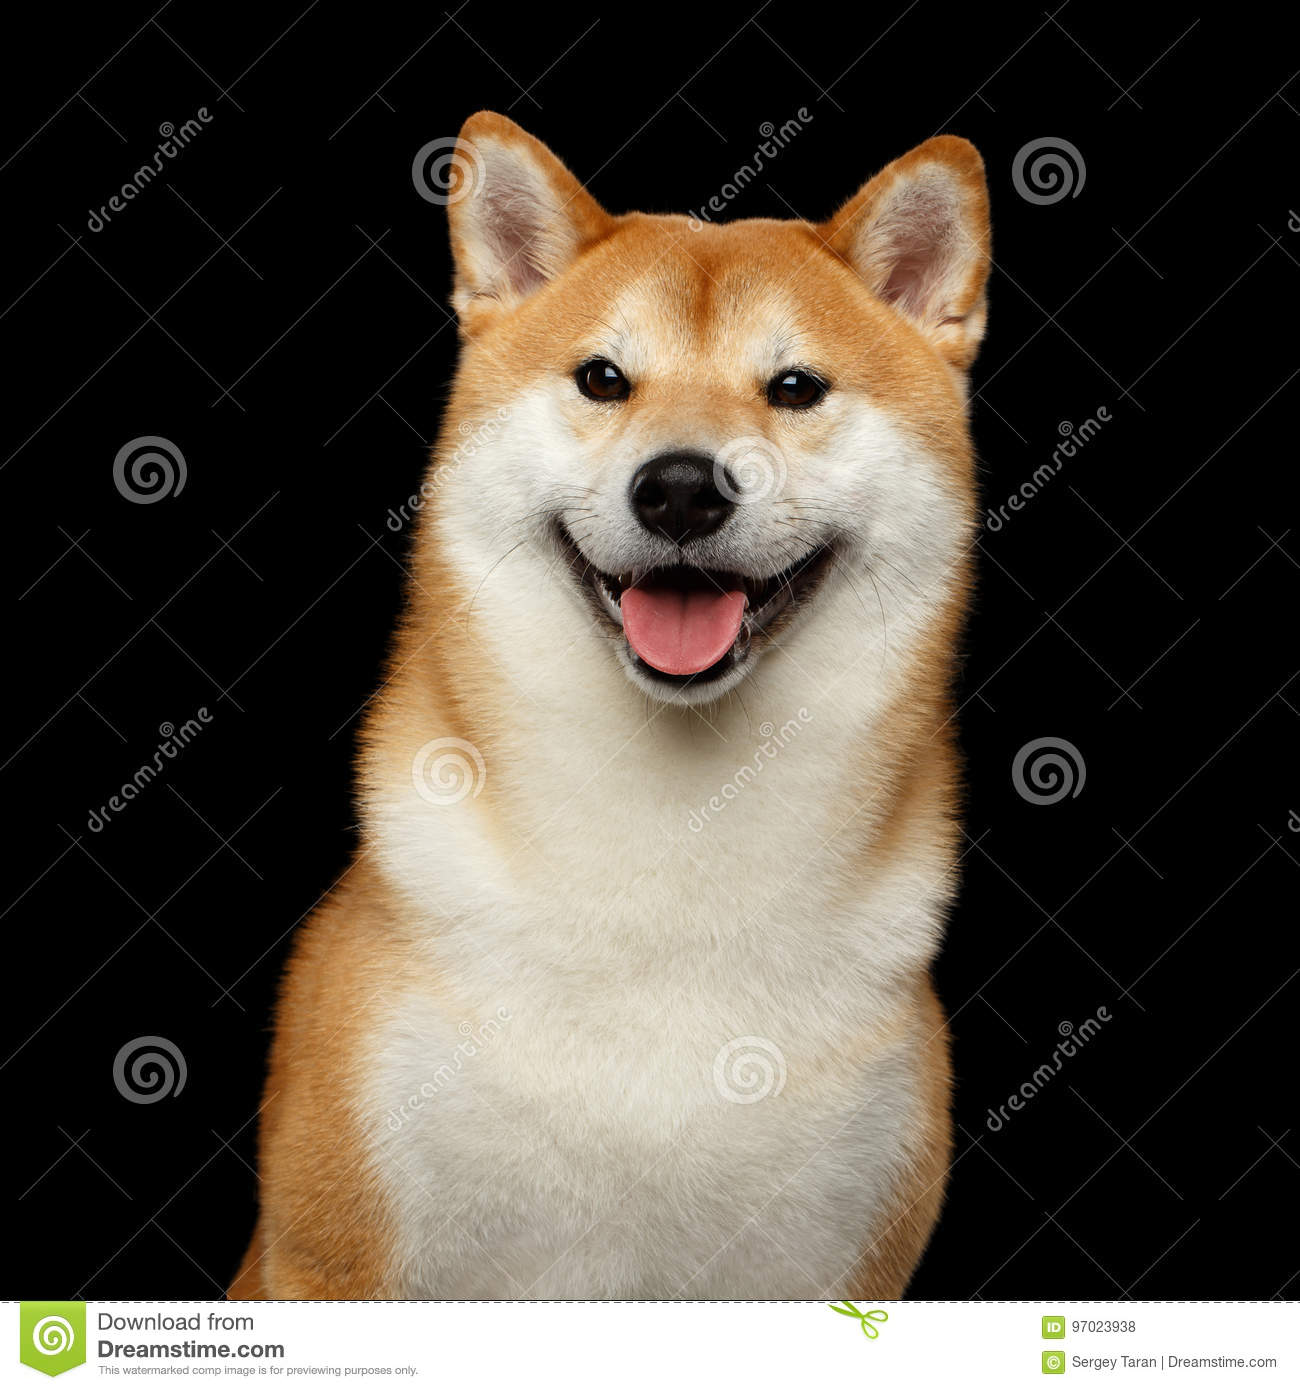 973 Shiba Inu Black Background Photos Free Royalty Free Stock Photos From Dreamstime